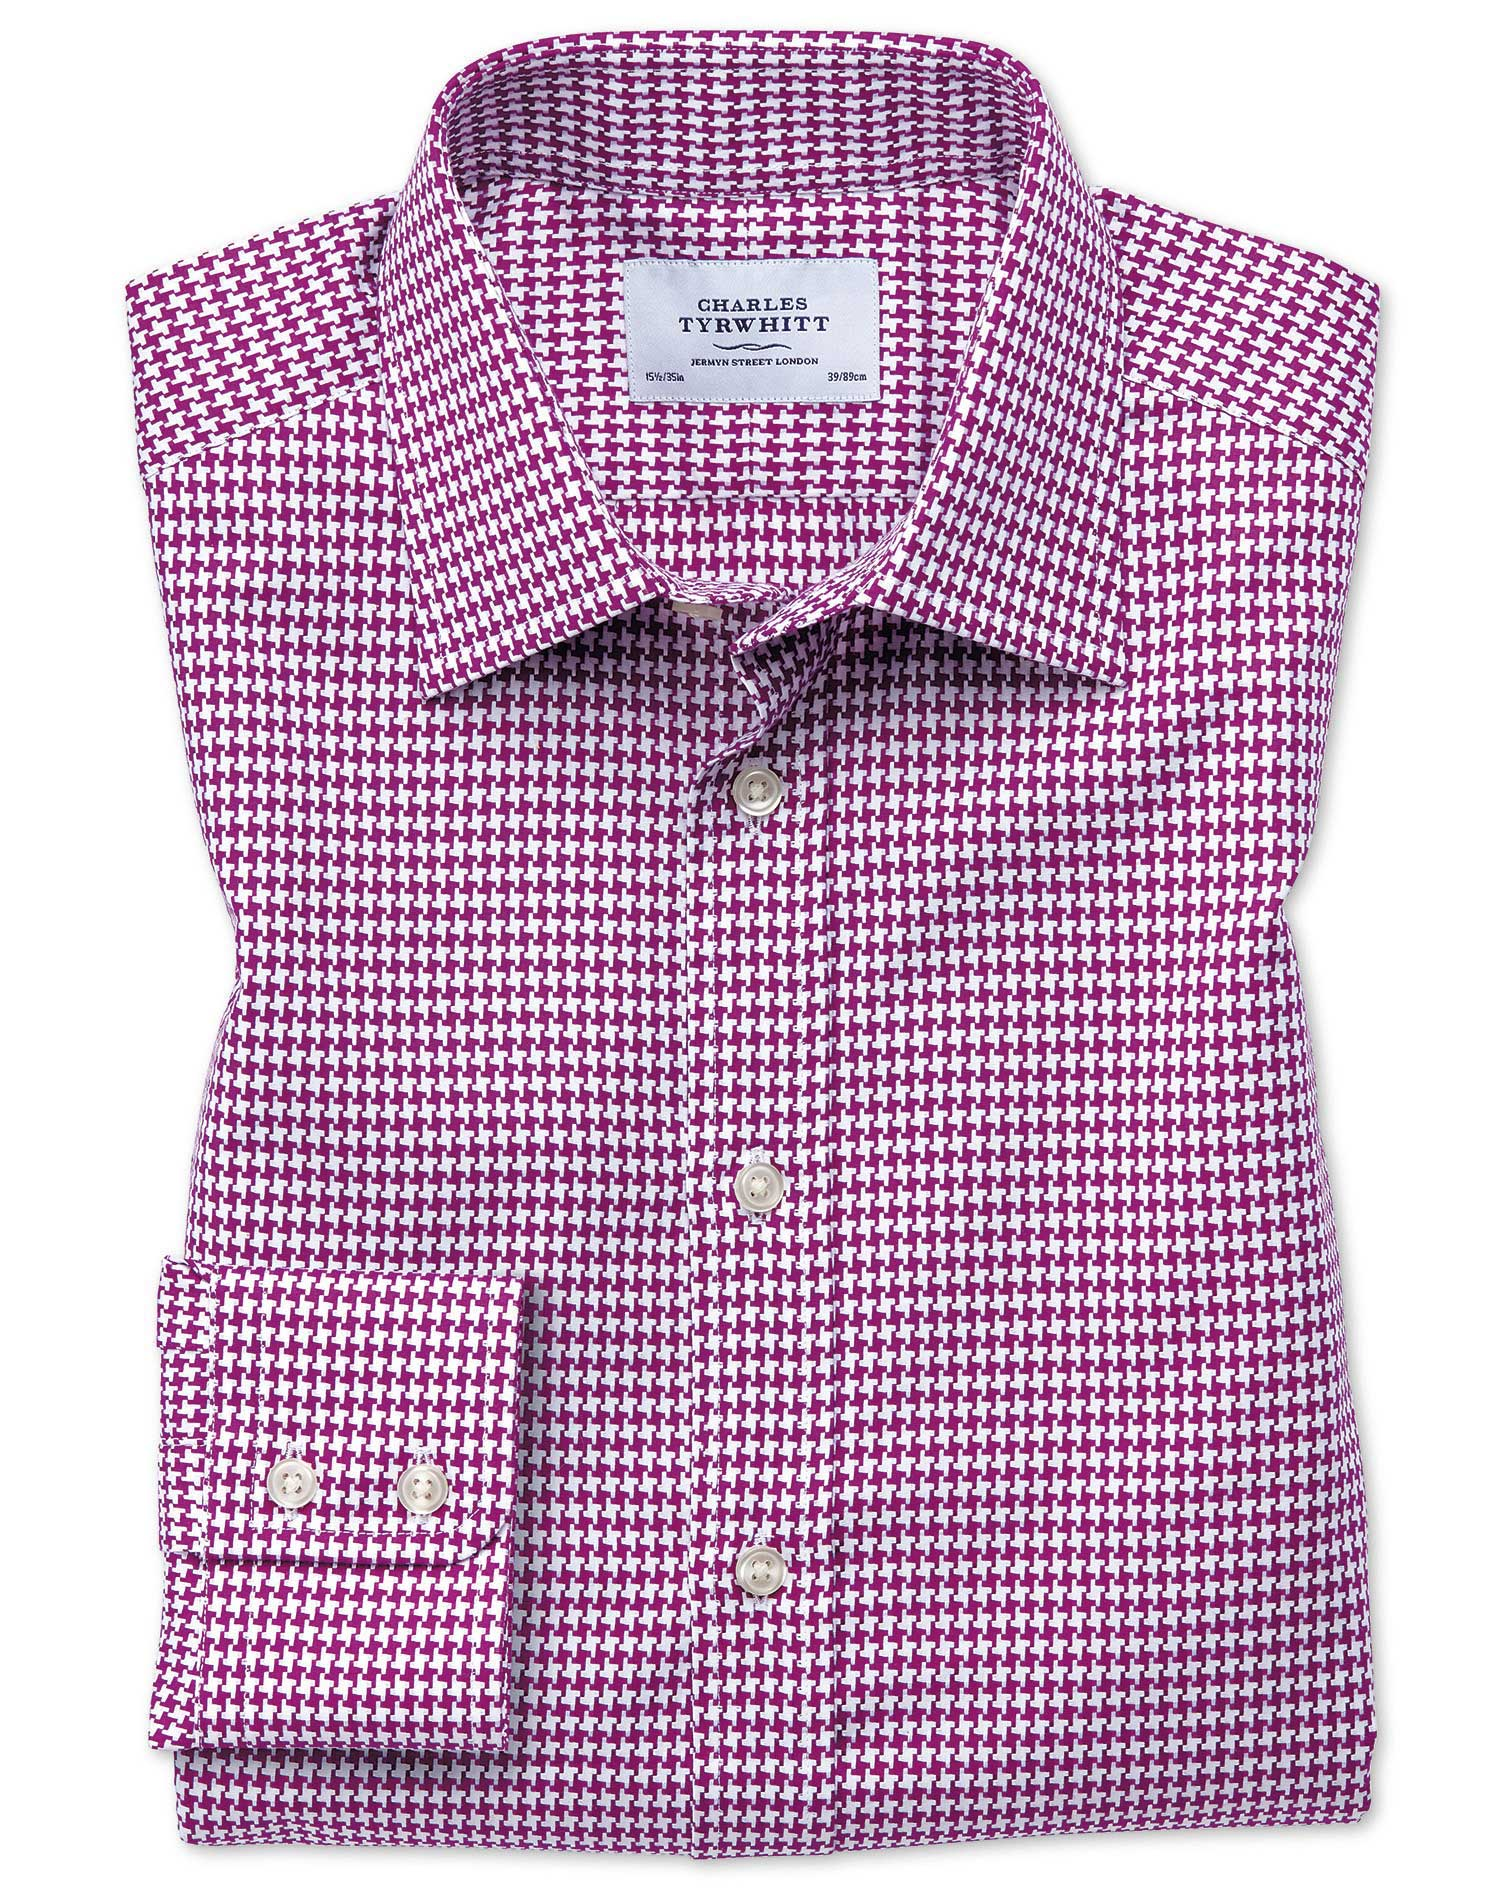 Slim Fit Large Puppytooth Berry Cotton Formal Shirt Single Cuff Size 17.5/36 by Charles Tyrwhitt